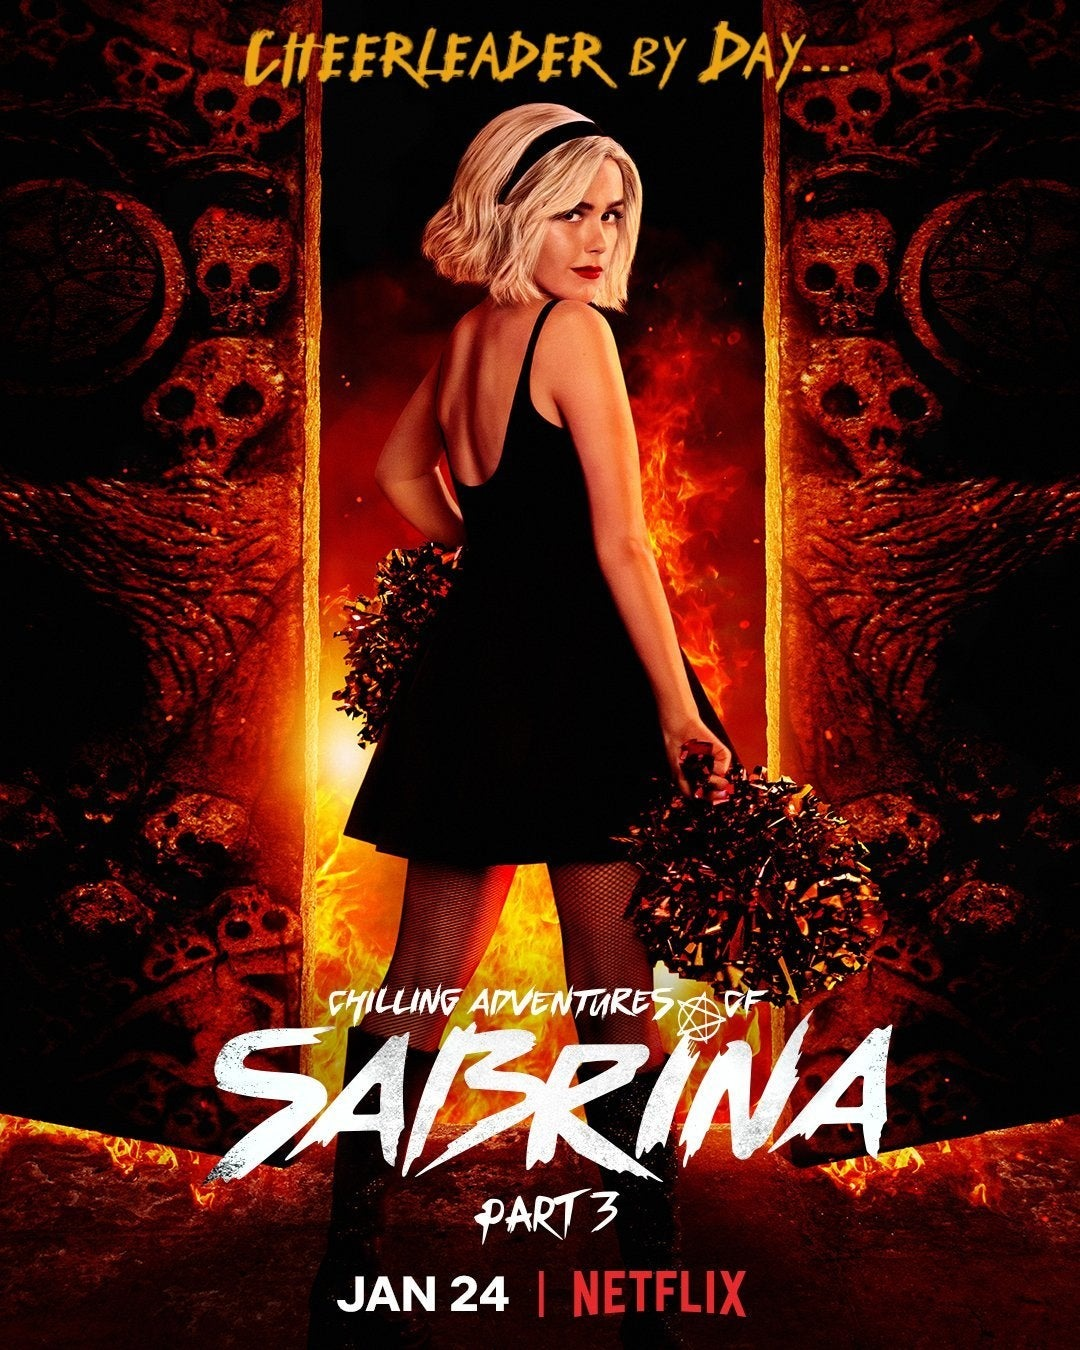 Chilling Adventures of Sabrina Season3 S03 1080p WEBRip HEVC